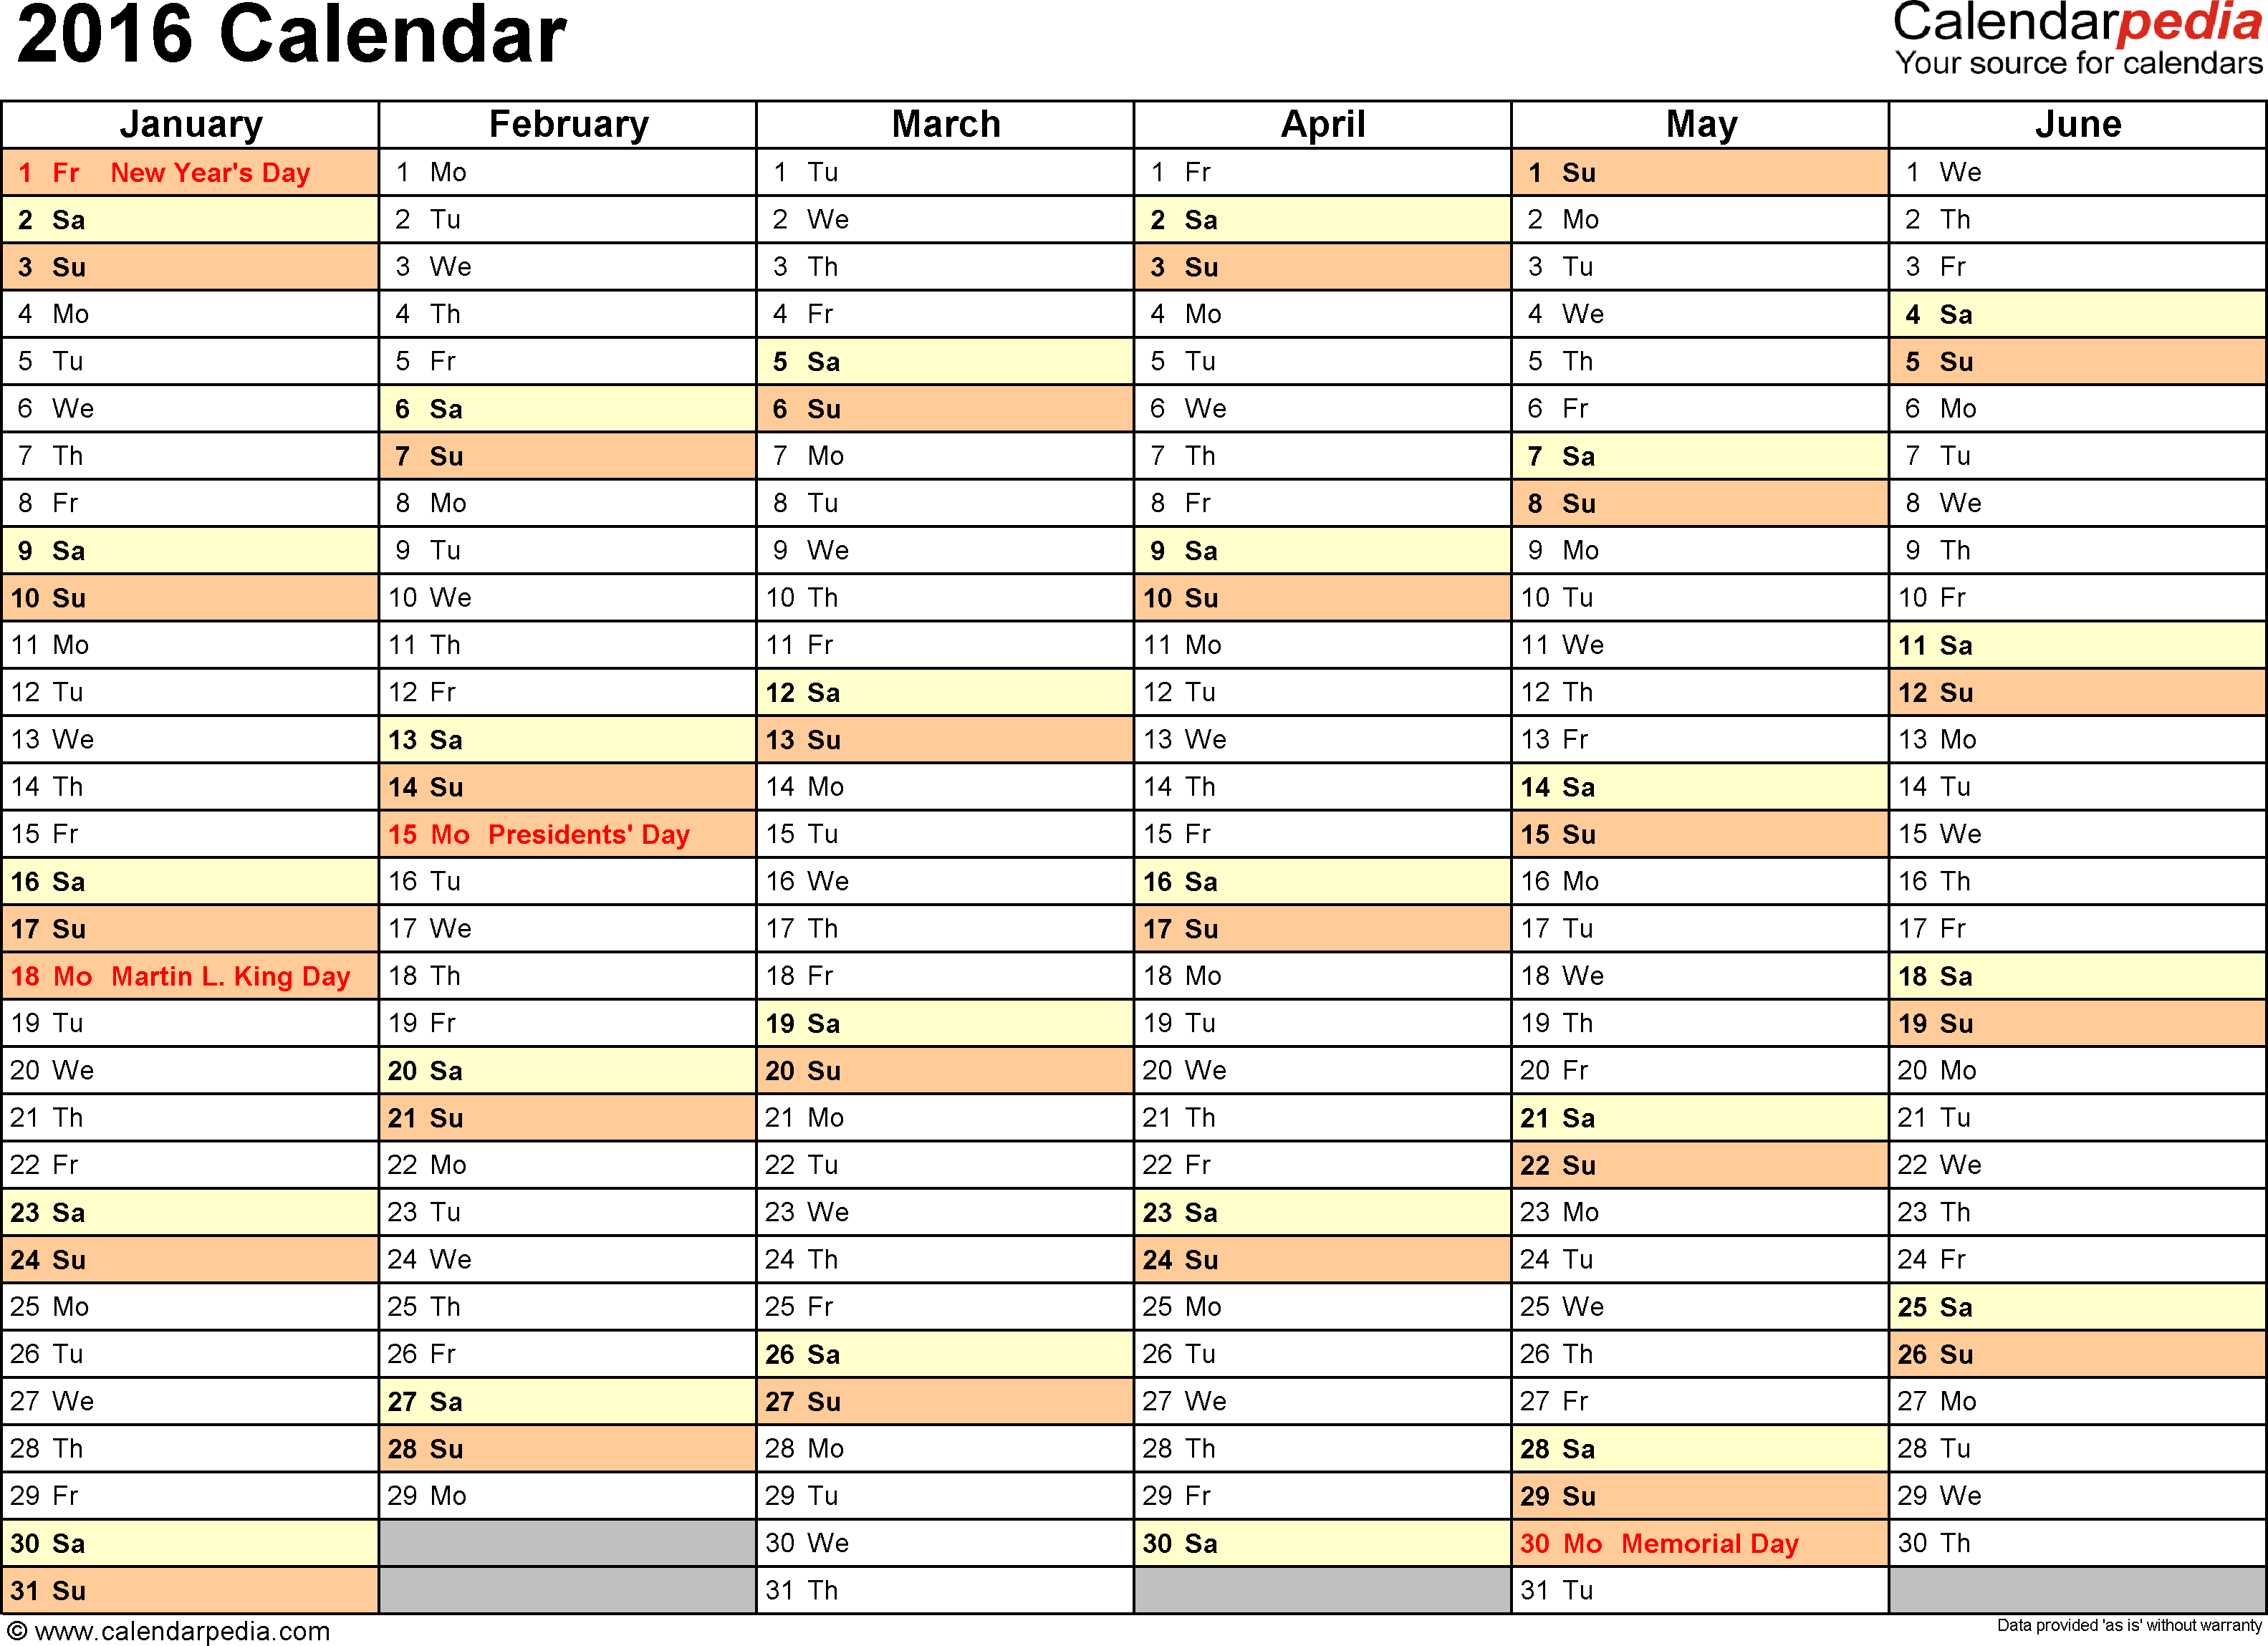 Ediblewildsus  Nice  Calendar  Download  Free Printable Excel Templates Xls With Foxy Template   Calendar For Excel Months Horizontally  Pages Landscape Orientation With Cool Excel Random Number Generator No Duplicates Also Less Than In Excel In Addition Excel High School Legit And Excel Combine As Well As Standard Deviation Function In Excel Additionally How To Count Cells With Text In Excel From Calendarpediacom With Ediblewildsus  Foxy  Calendar  Download  Free Printable Excel Templates Xls With Cool Template   Calendar For Excel Months Horizontally  Pages Landscape Orientation And Nice Excel Random Number Generator No Duplicates Also Less Than In Excel In Addition Excel High School Legit From Calendarpediacom